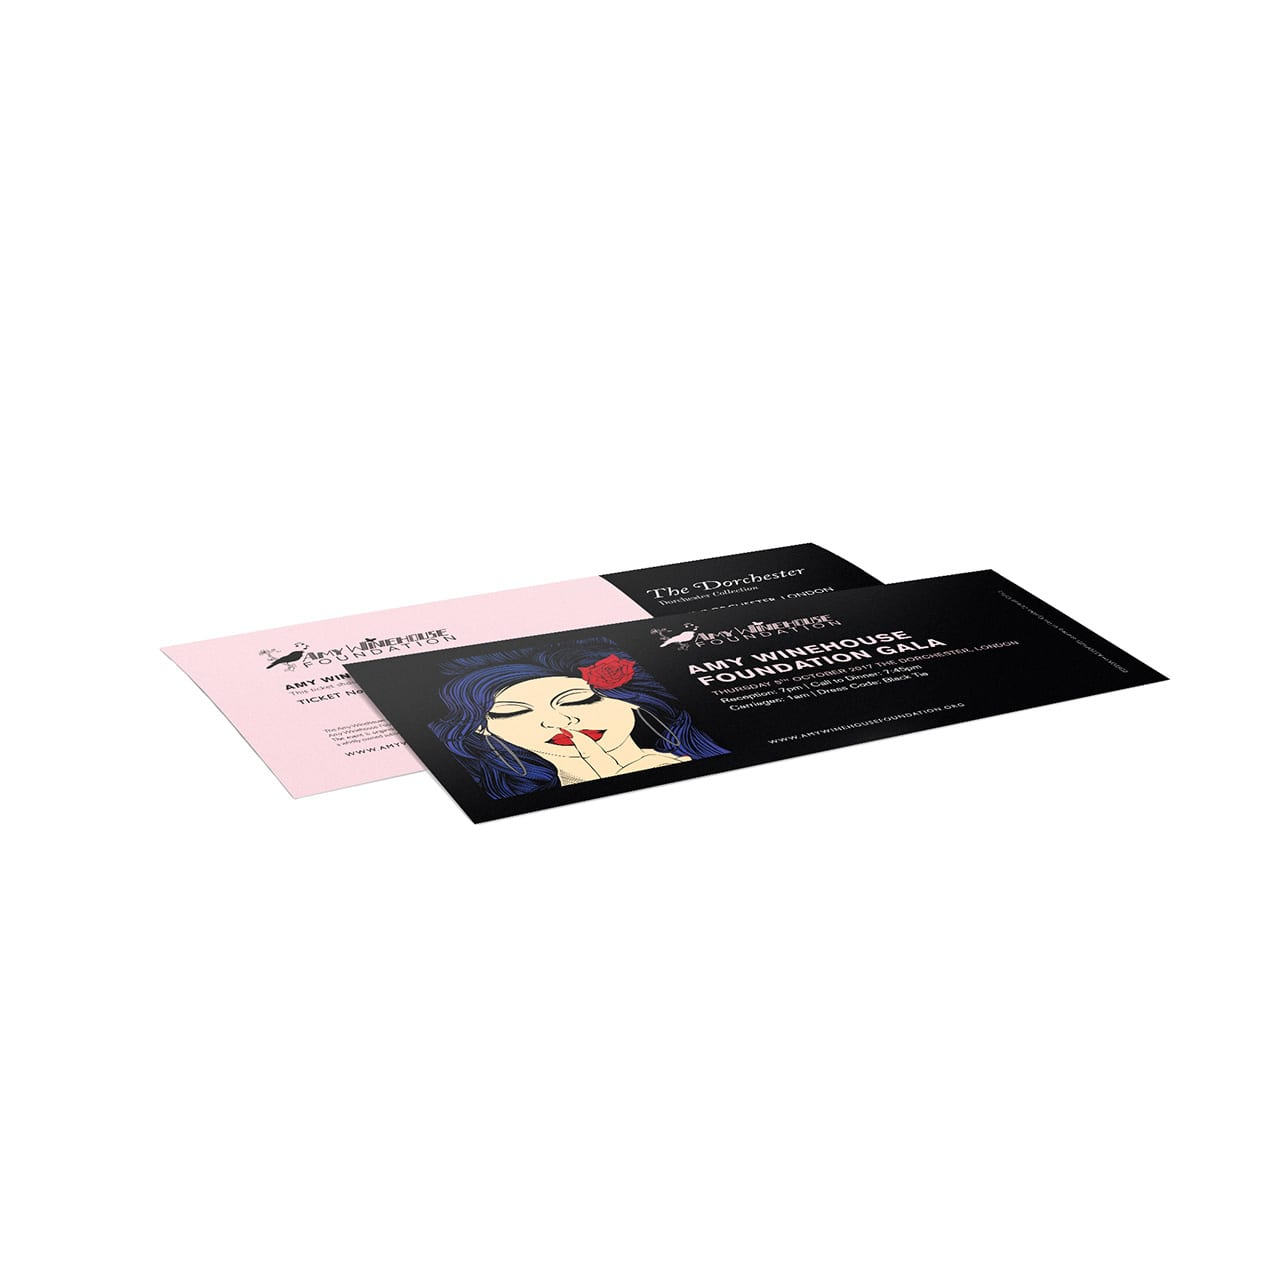 Two branded ticket designs for the Amy Winehouse Foundation Gala event